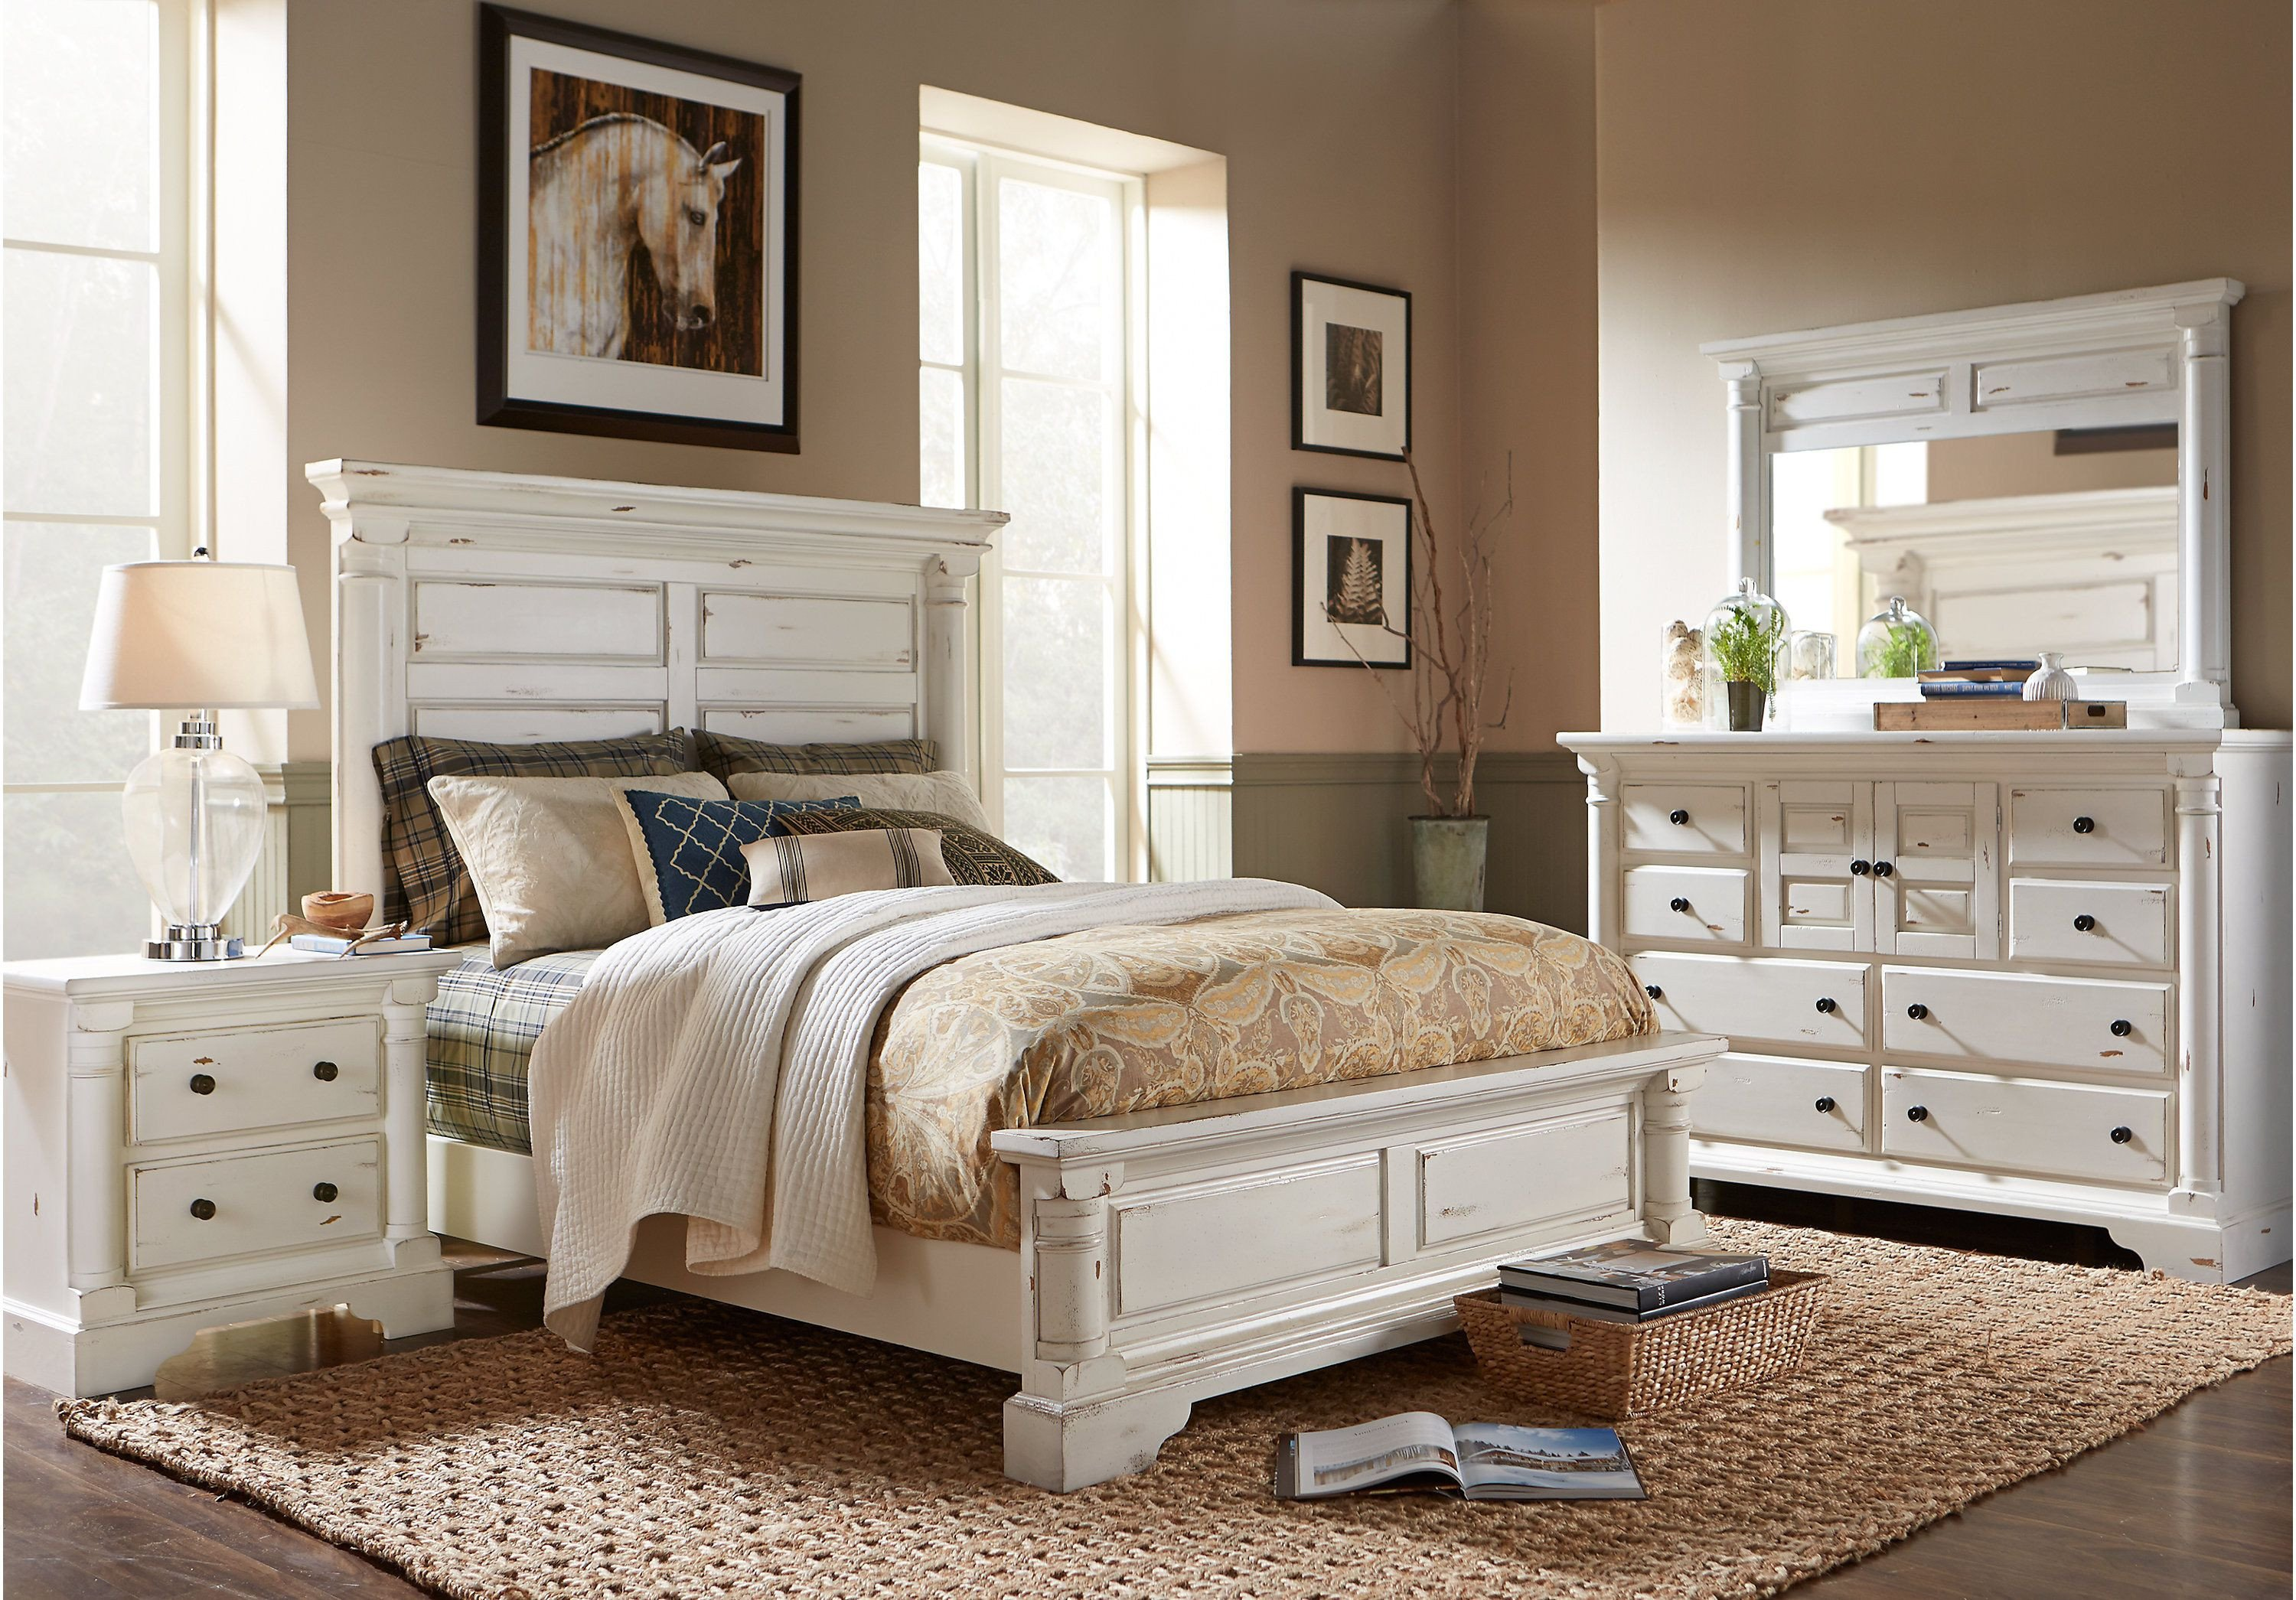 Toddlers Bedroom Furniture Set Unique Bedroom Charming Roomstogokids with Beautiful Decor for